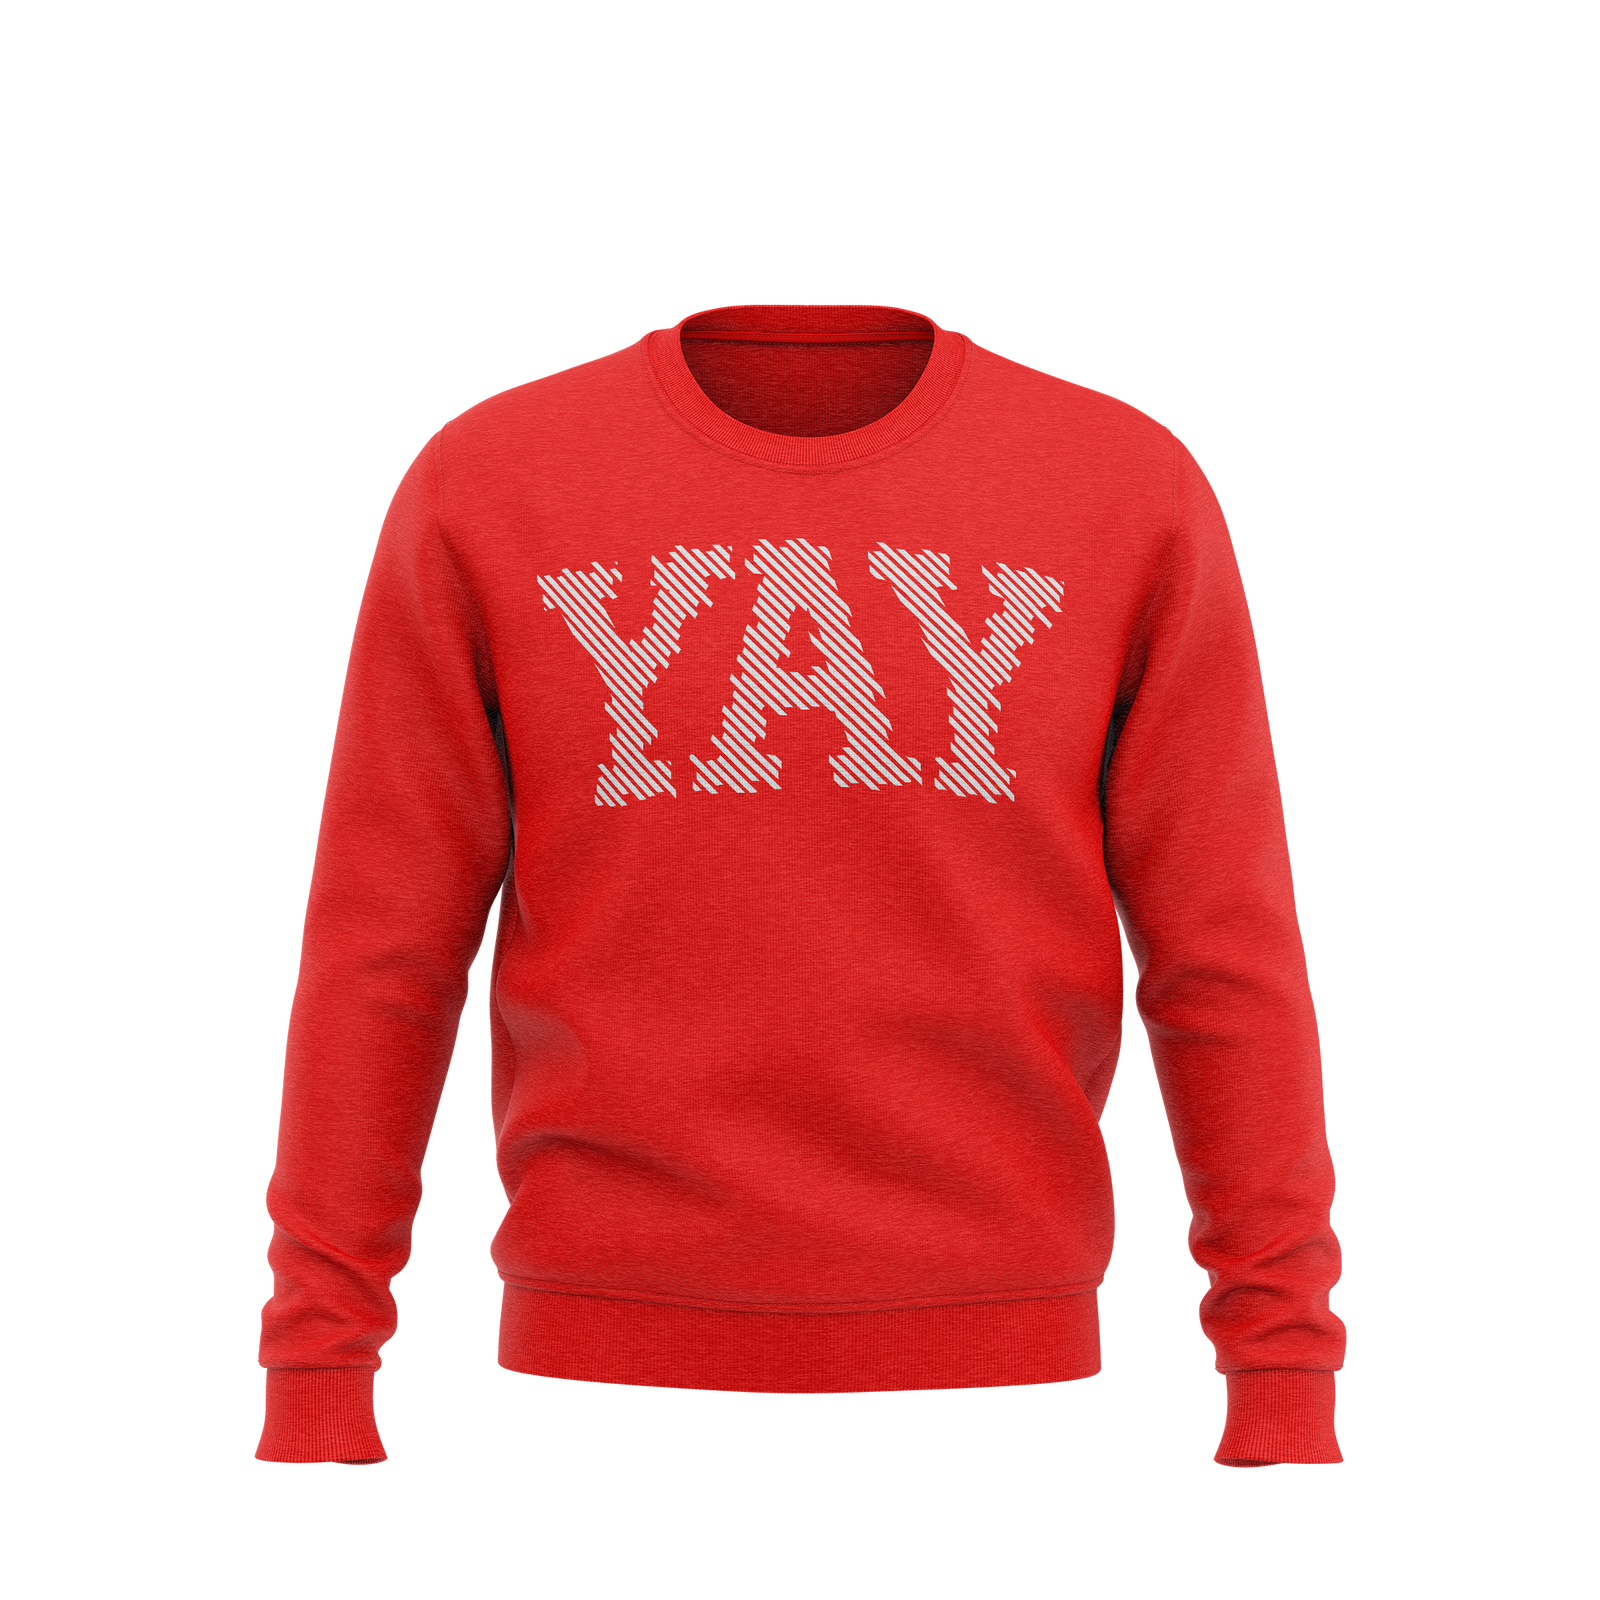 YAY Lines Crewneck Sweatshirt (Red)